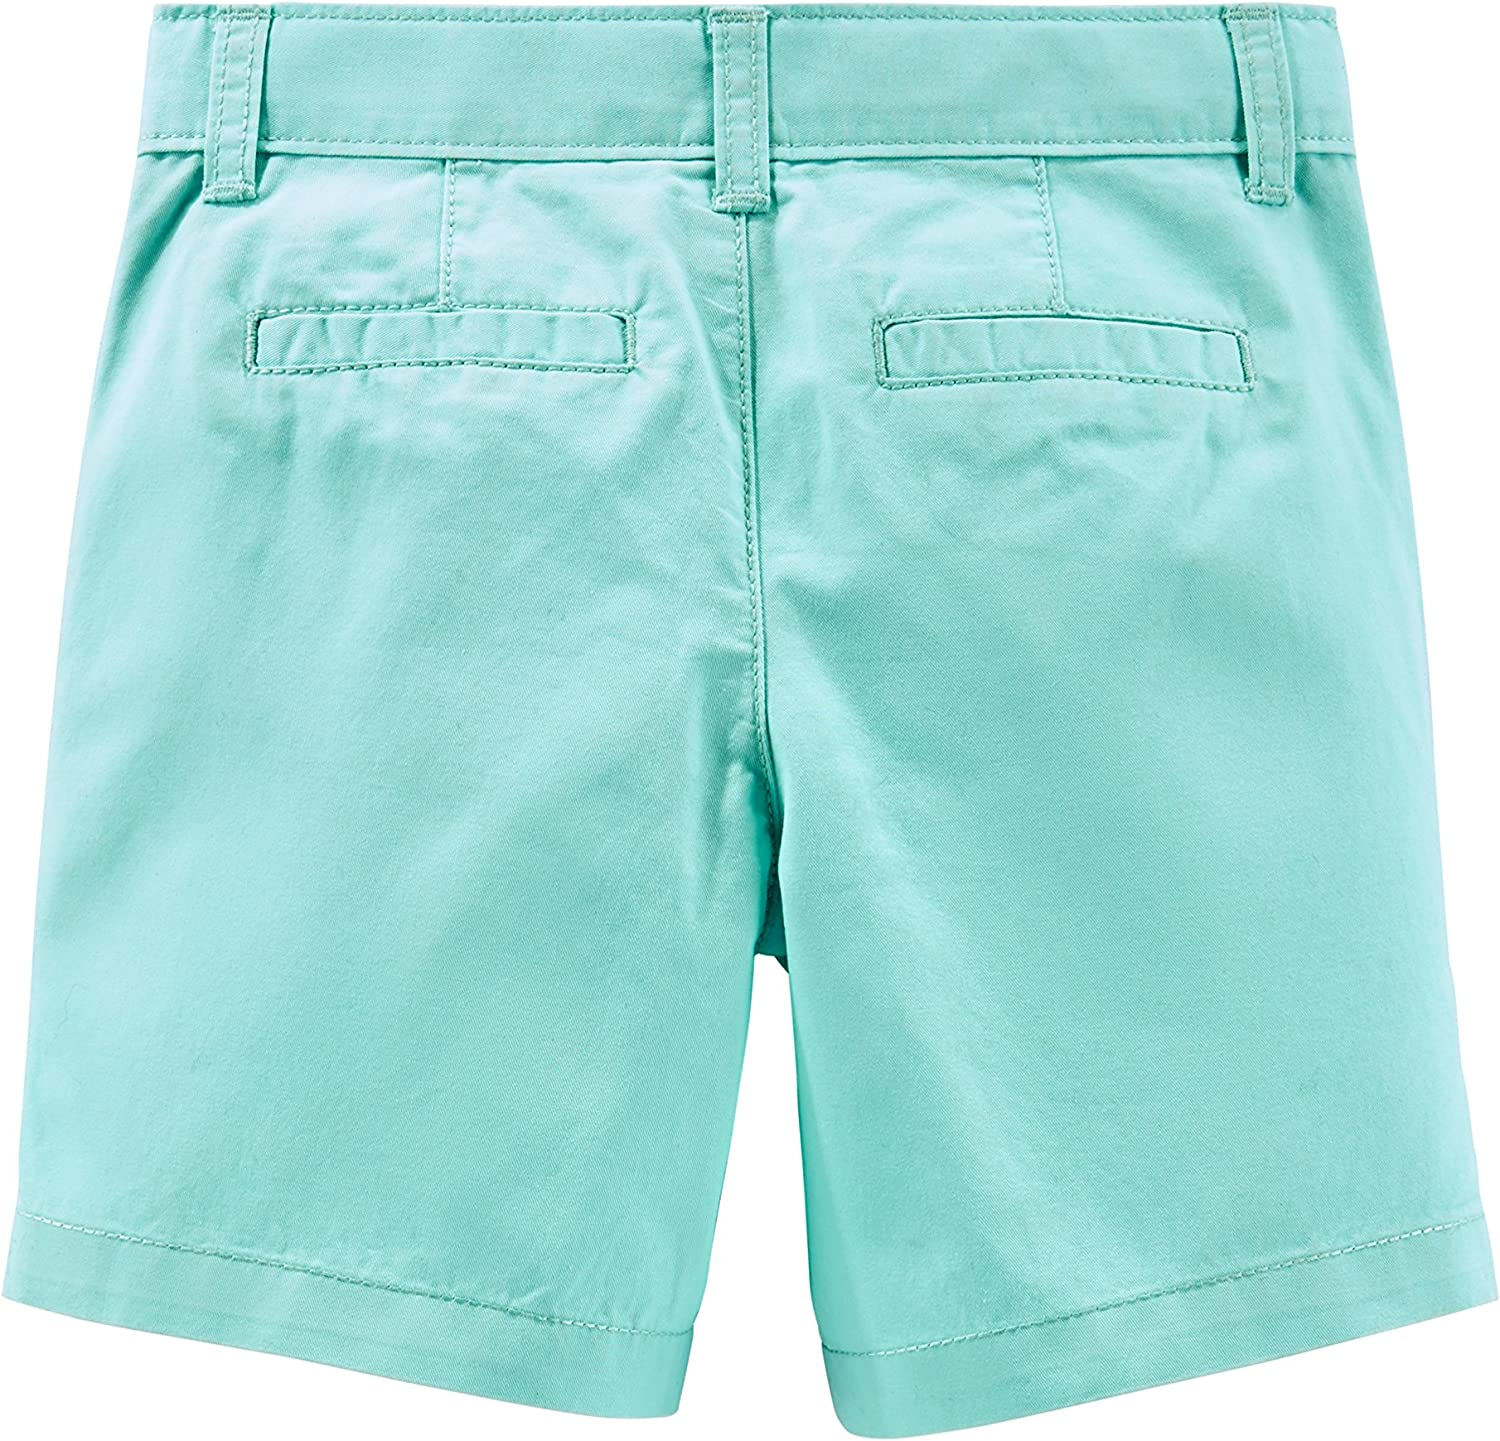 Simple Joys by Carters Boys Toddler 2-Pack Flat Front Shorts